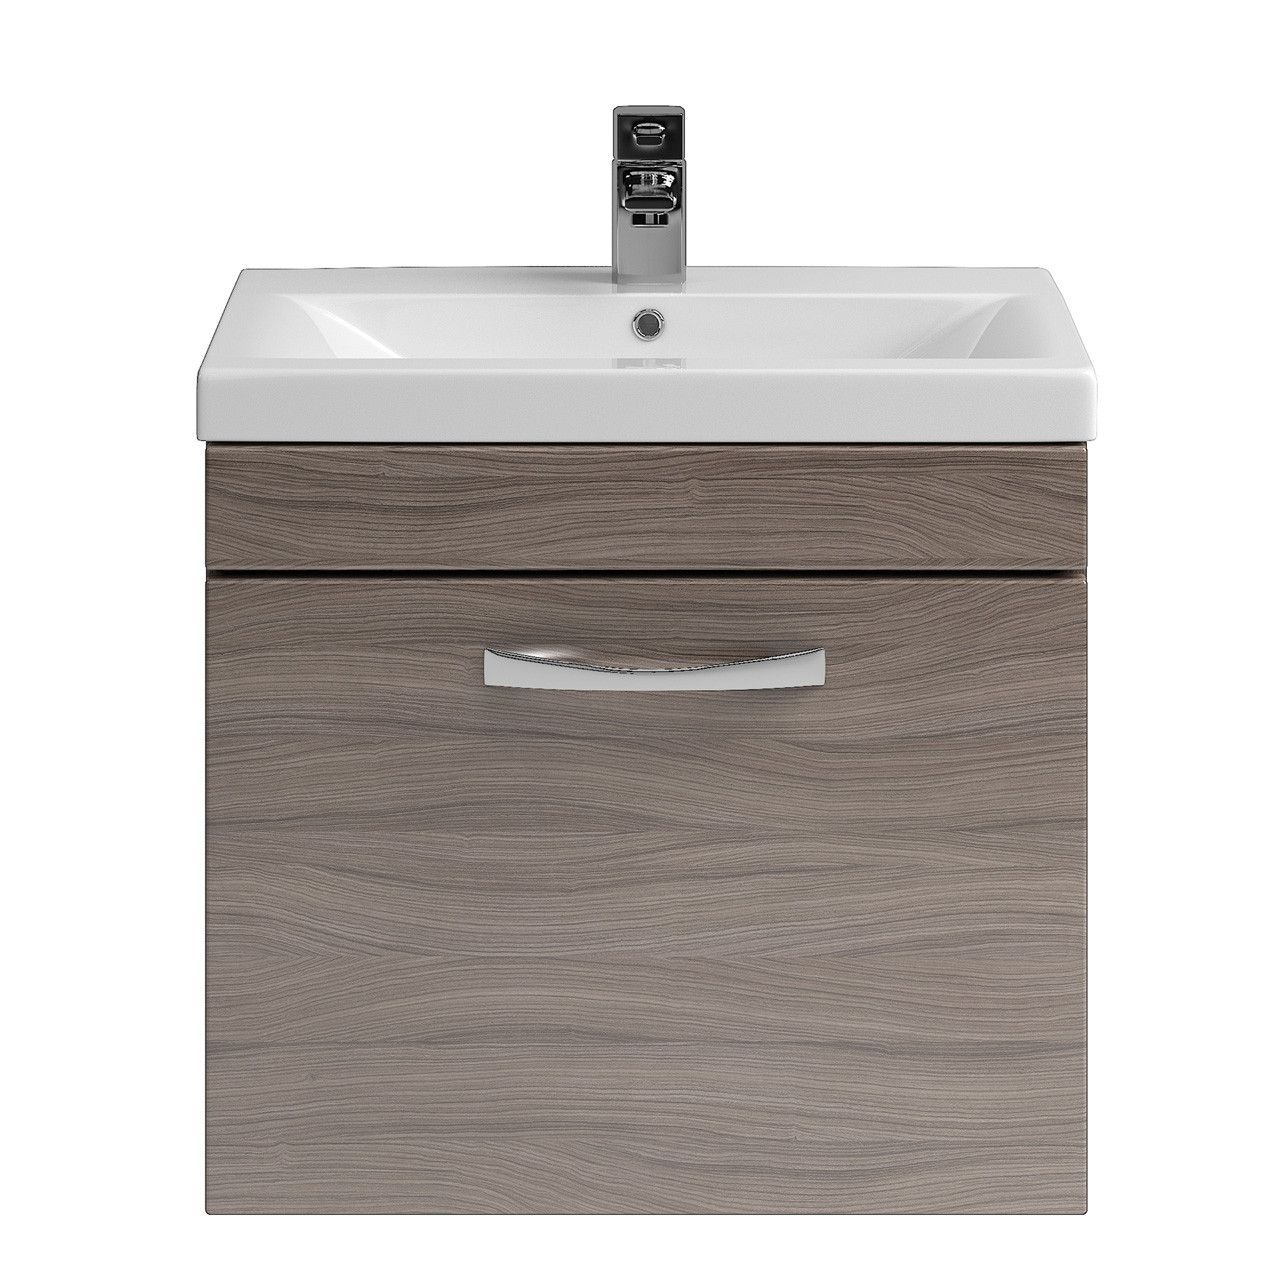 Premier shipton driftwood wall hung 500mm cabinet basin for Bathroom cabinets 500mm wide